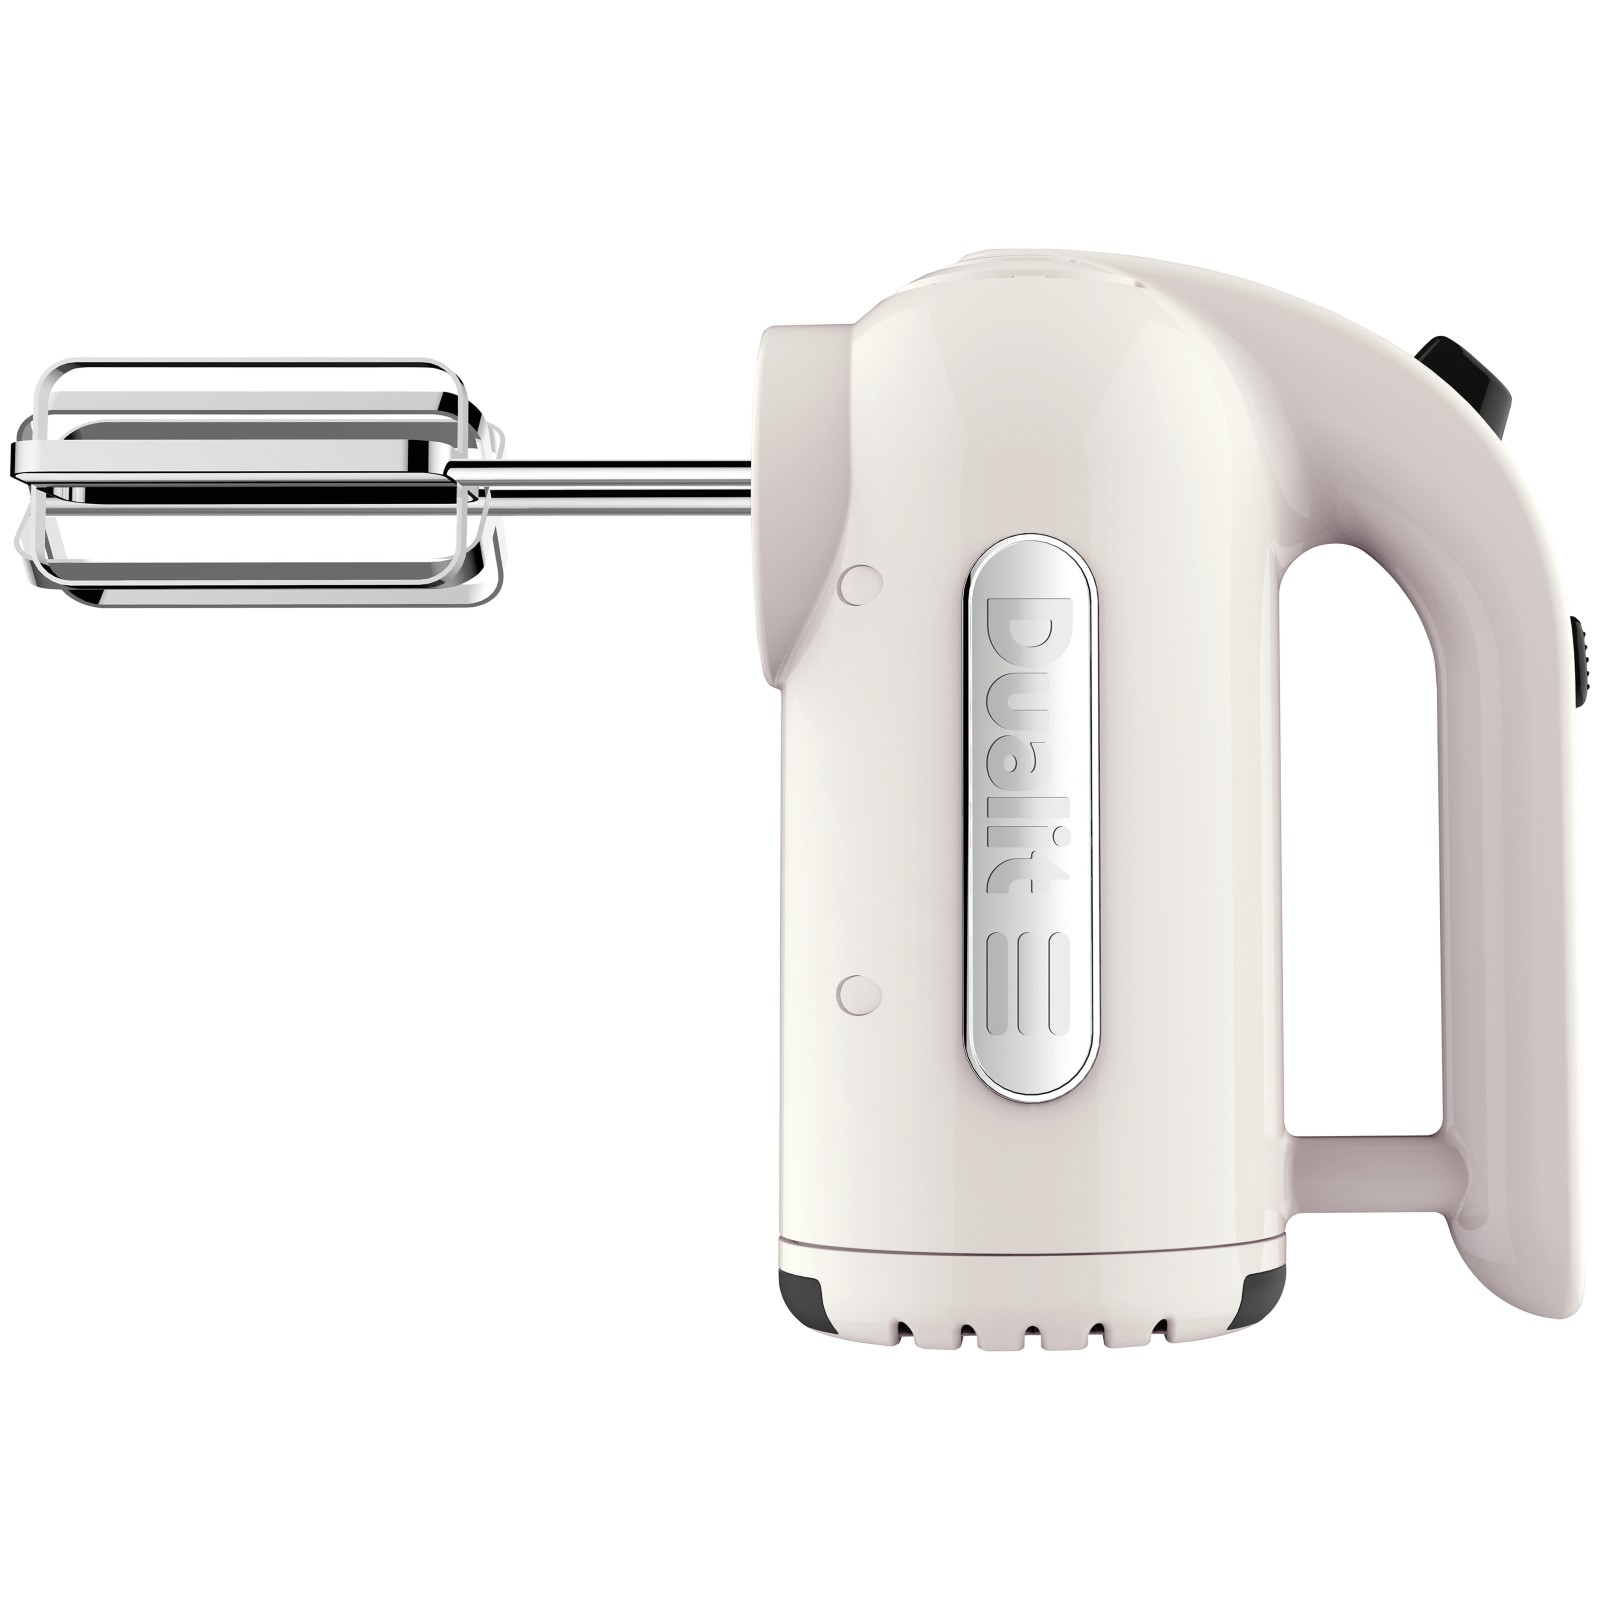 Dualit Hand Mixer ~ Dualit hand mixer canvas white review best buy